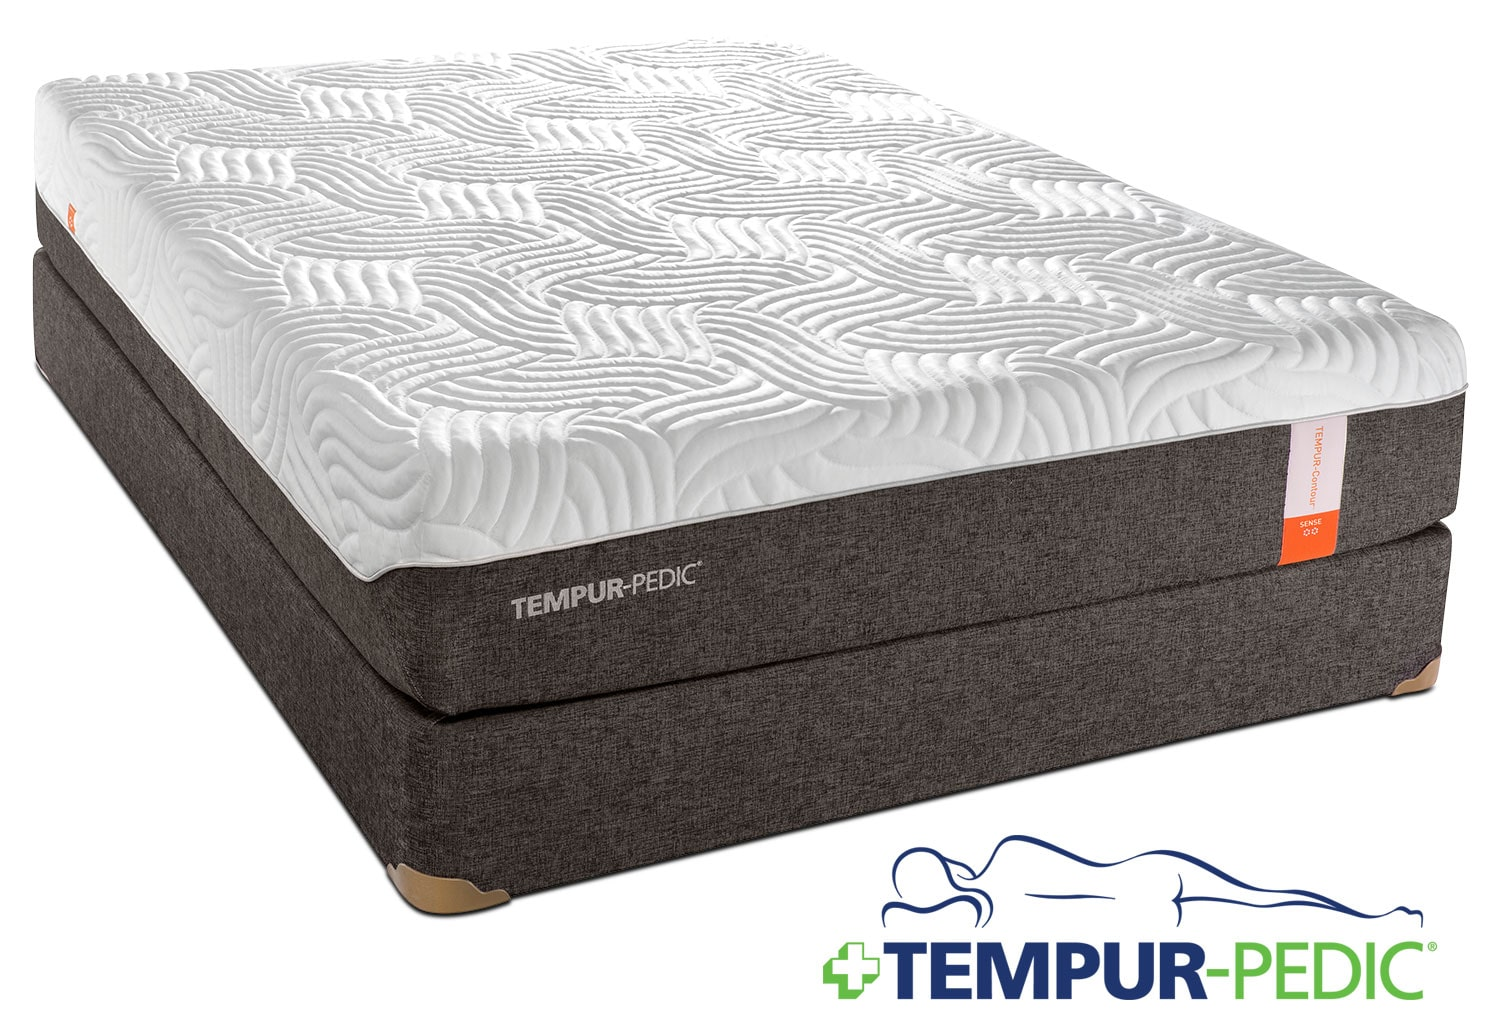 Mattresses and Bedding - Tempur-Pedic Sense Firm Twin XL Mattress and Boxspring Set